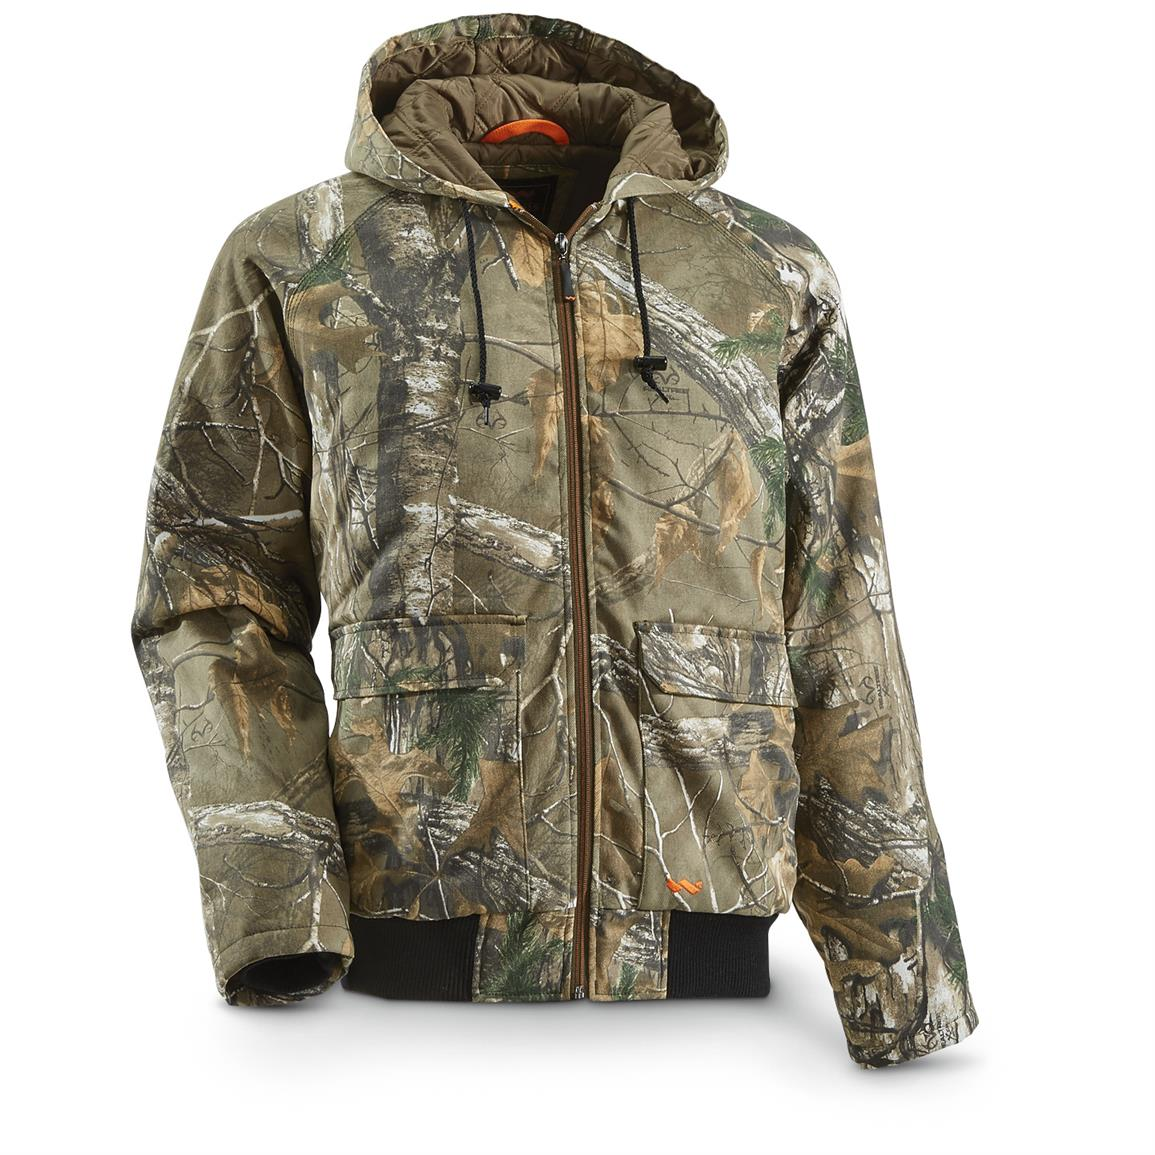 Walls Men's Insulated Camo Bomber Jacket, Realtree Xtra